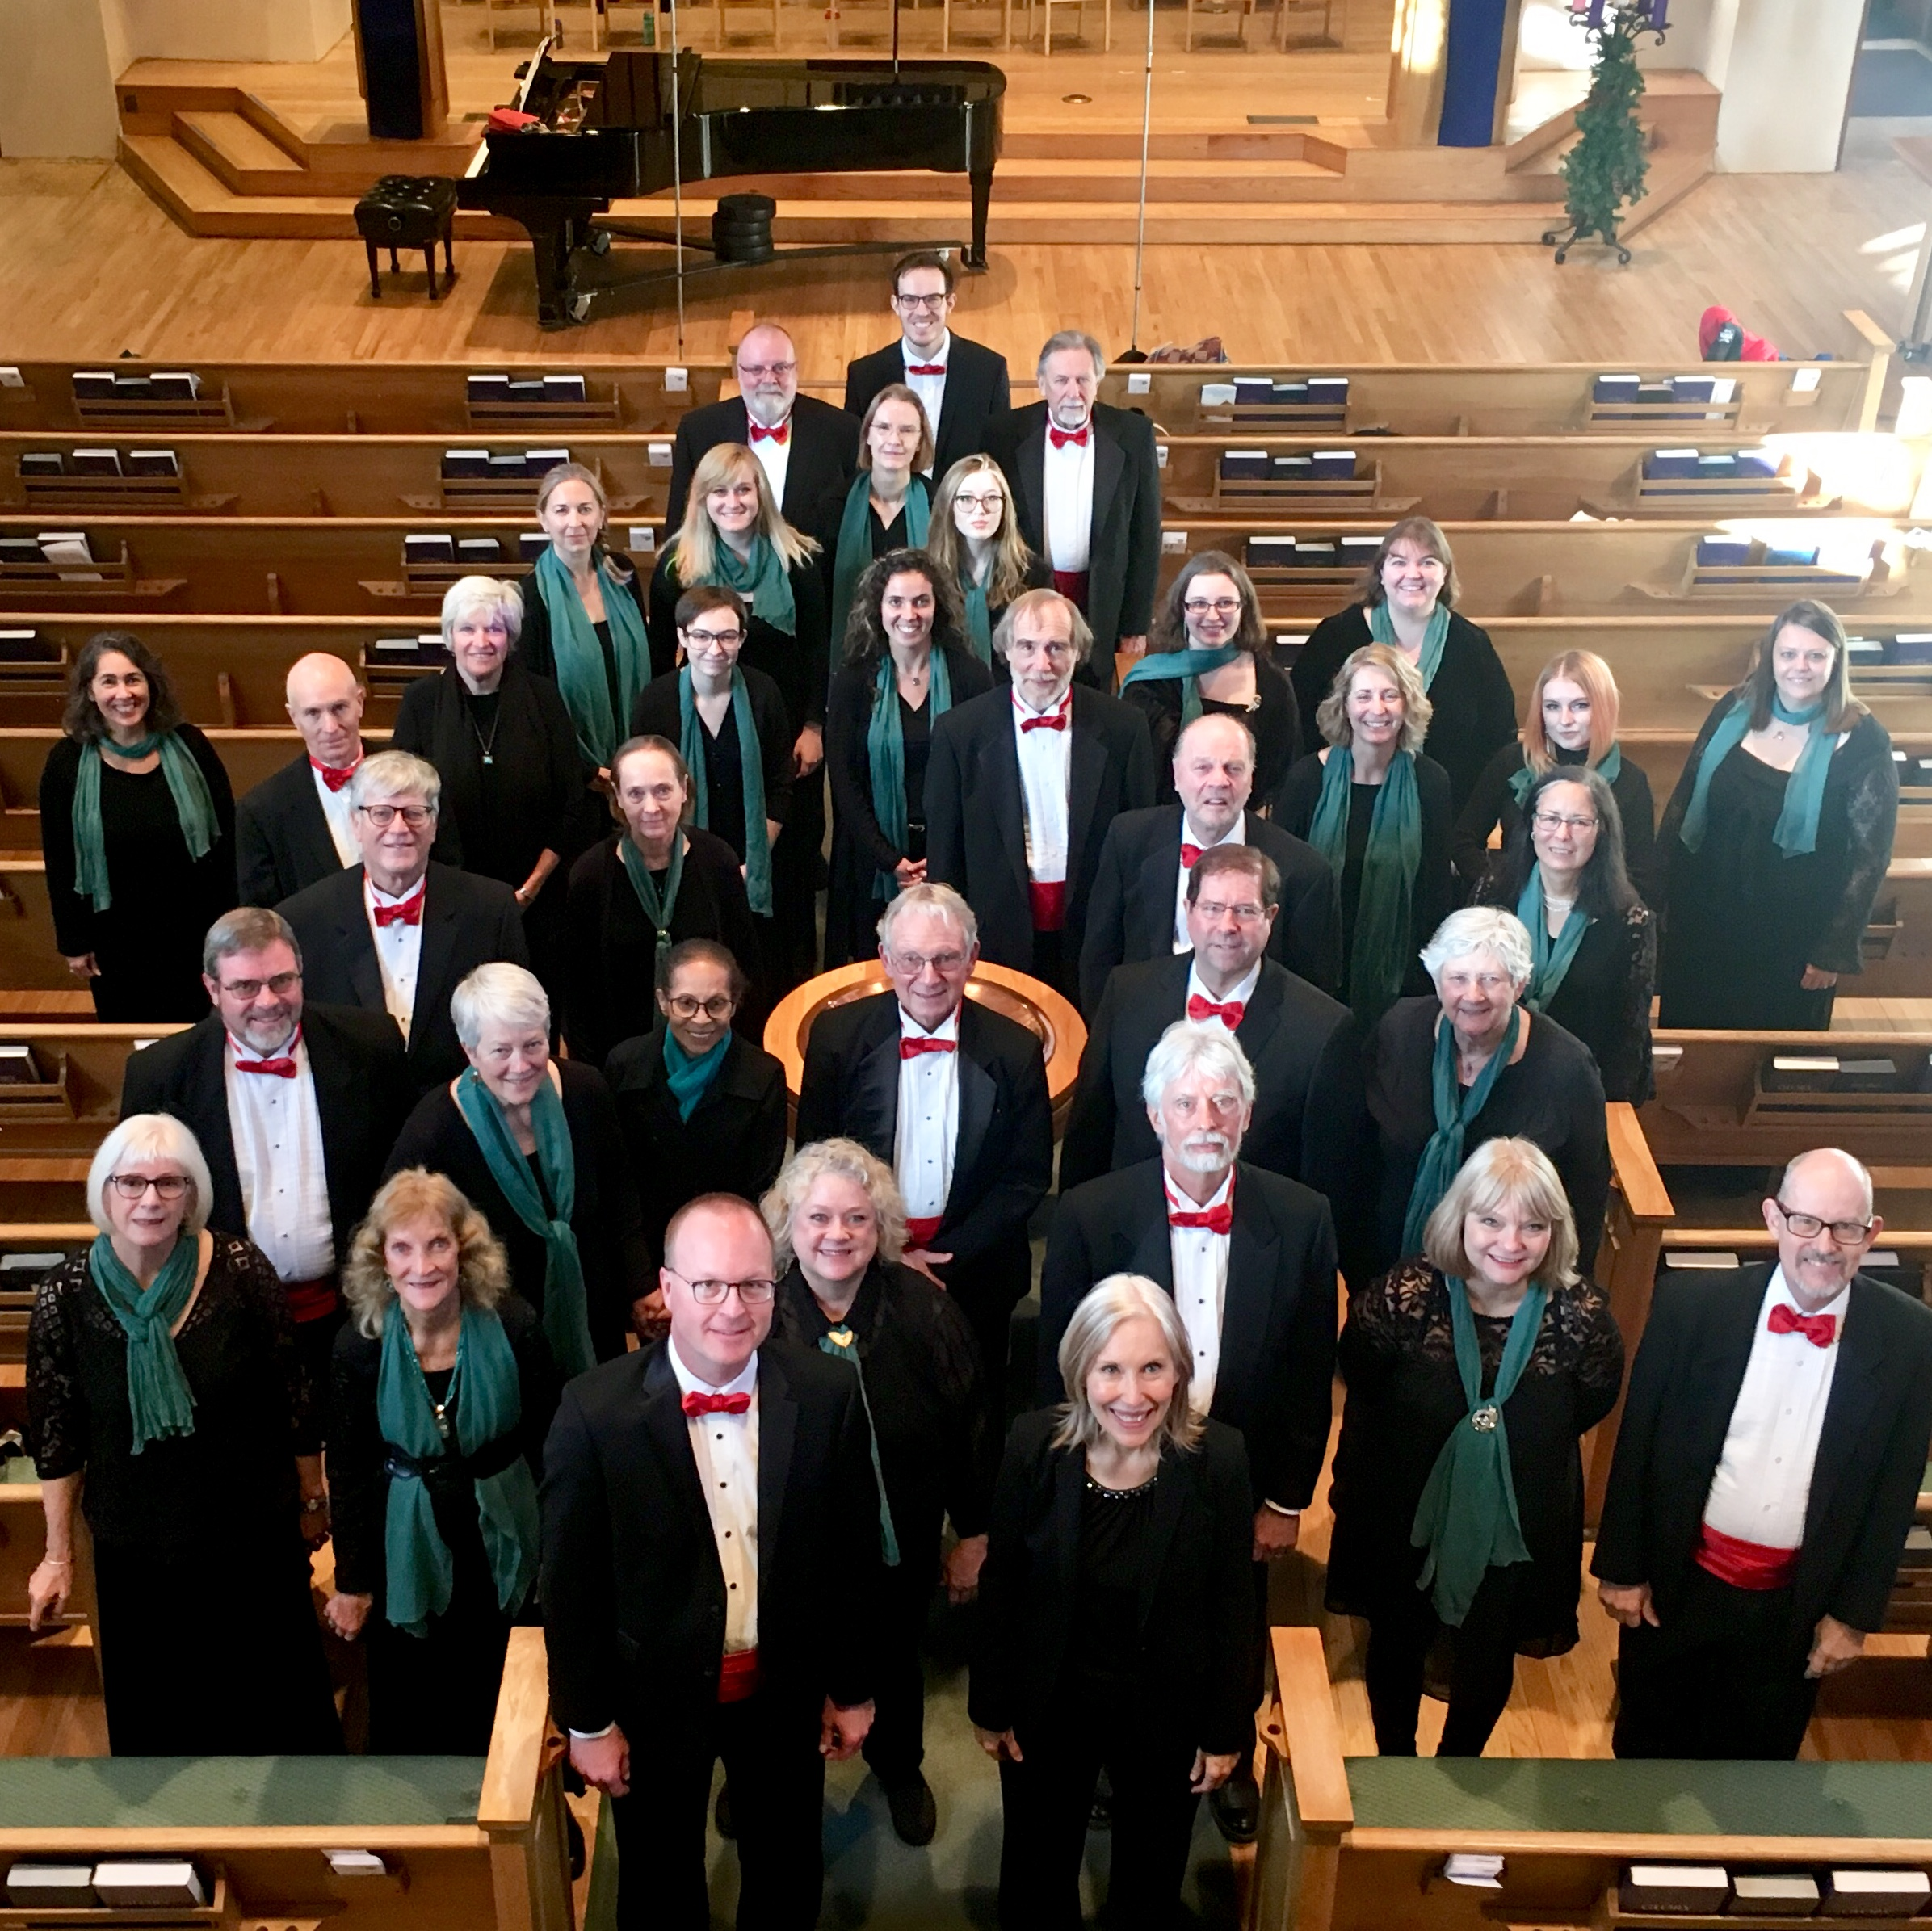 Since 1978, the Sangre de Cristo Chorale has been performing for audiences across New Mexico. Click here to learn more about our organization.